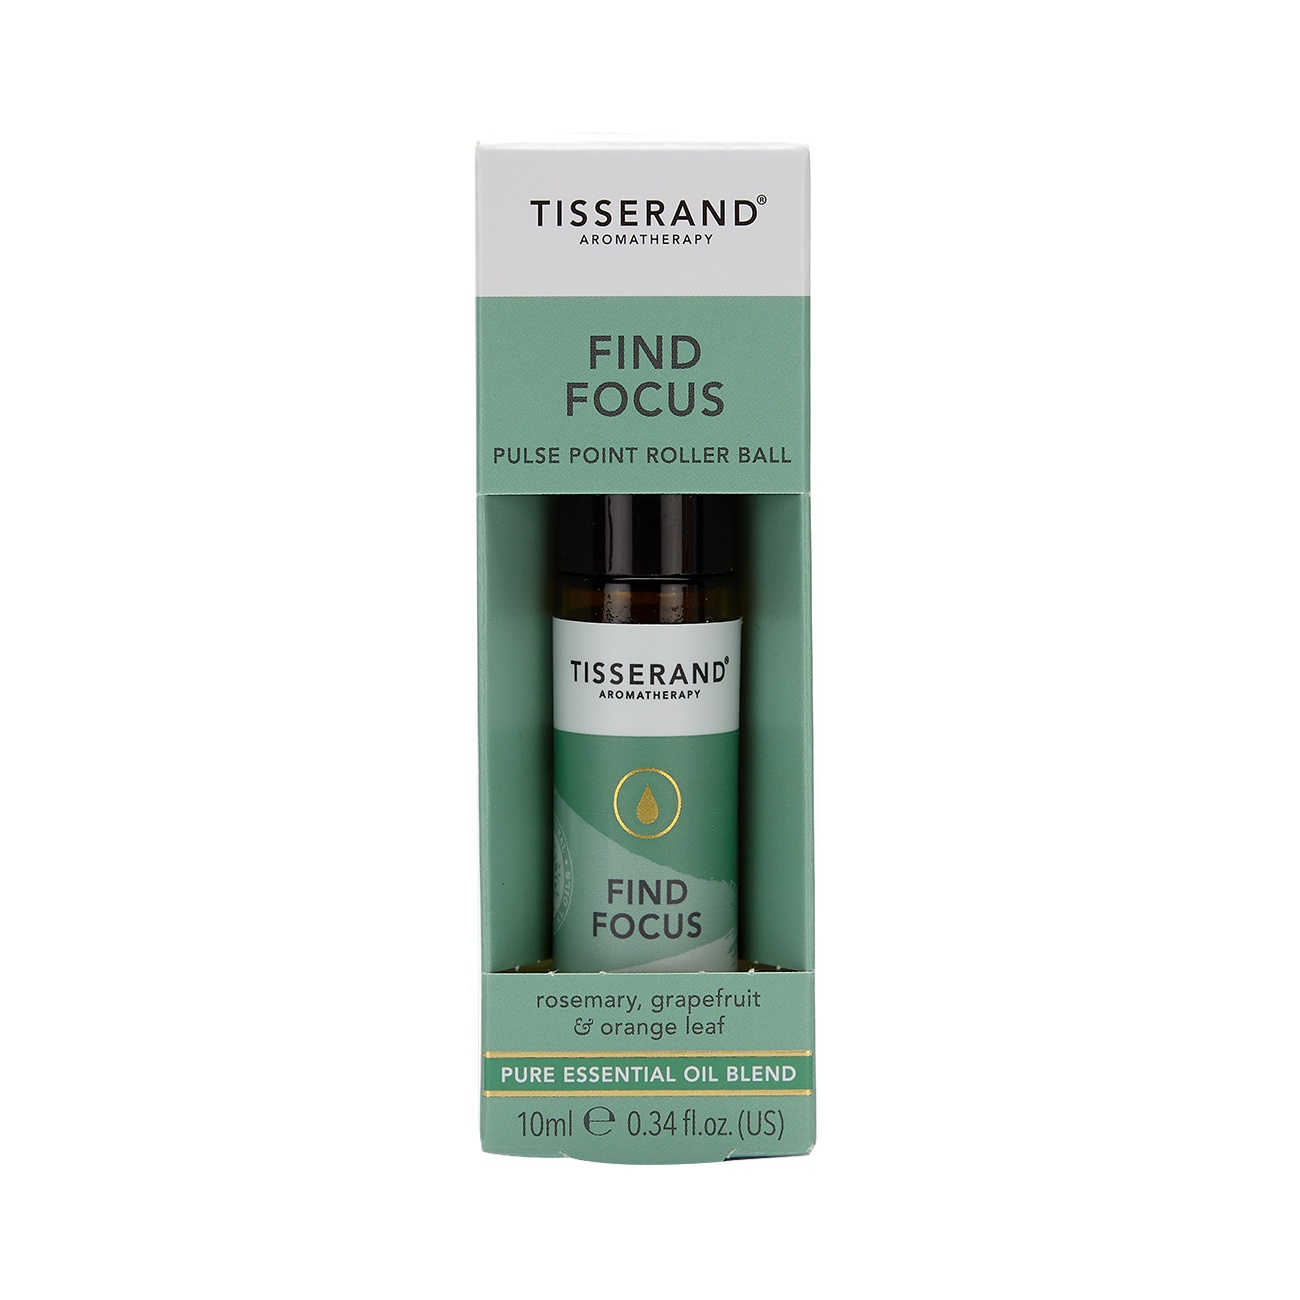 Tisserand Find Focus Aromatherapy Roller Ball 10ml